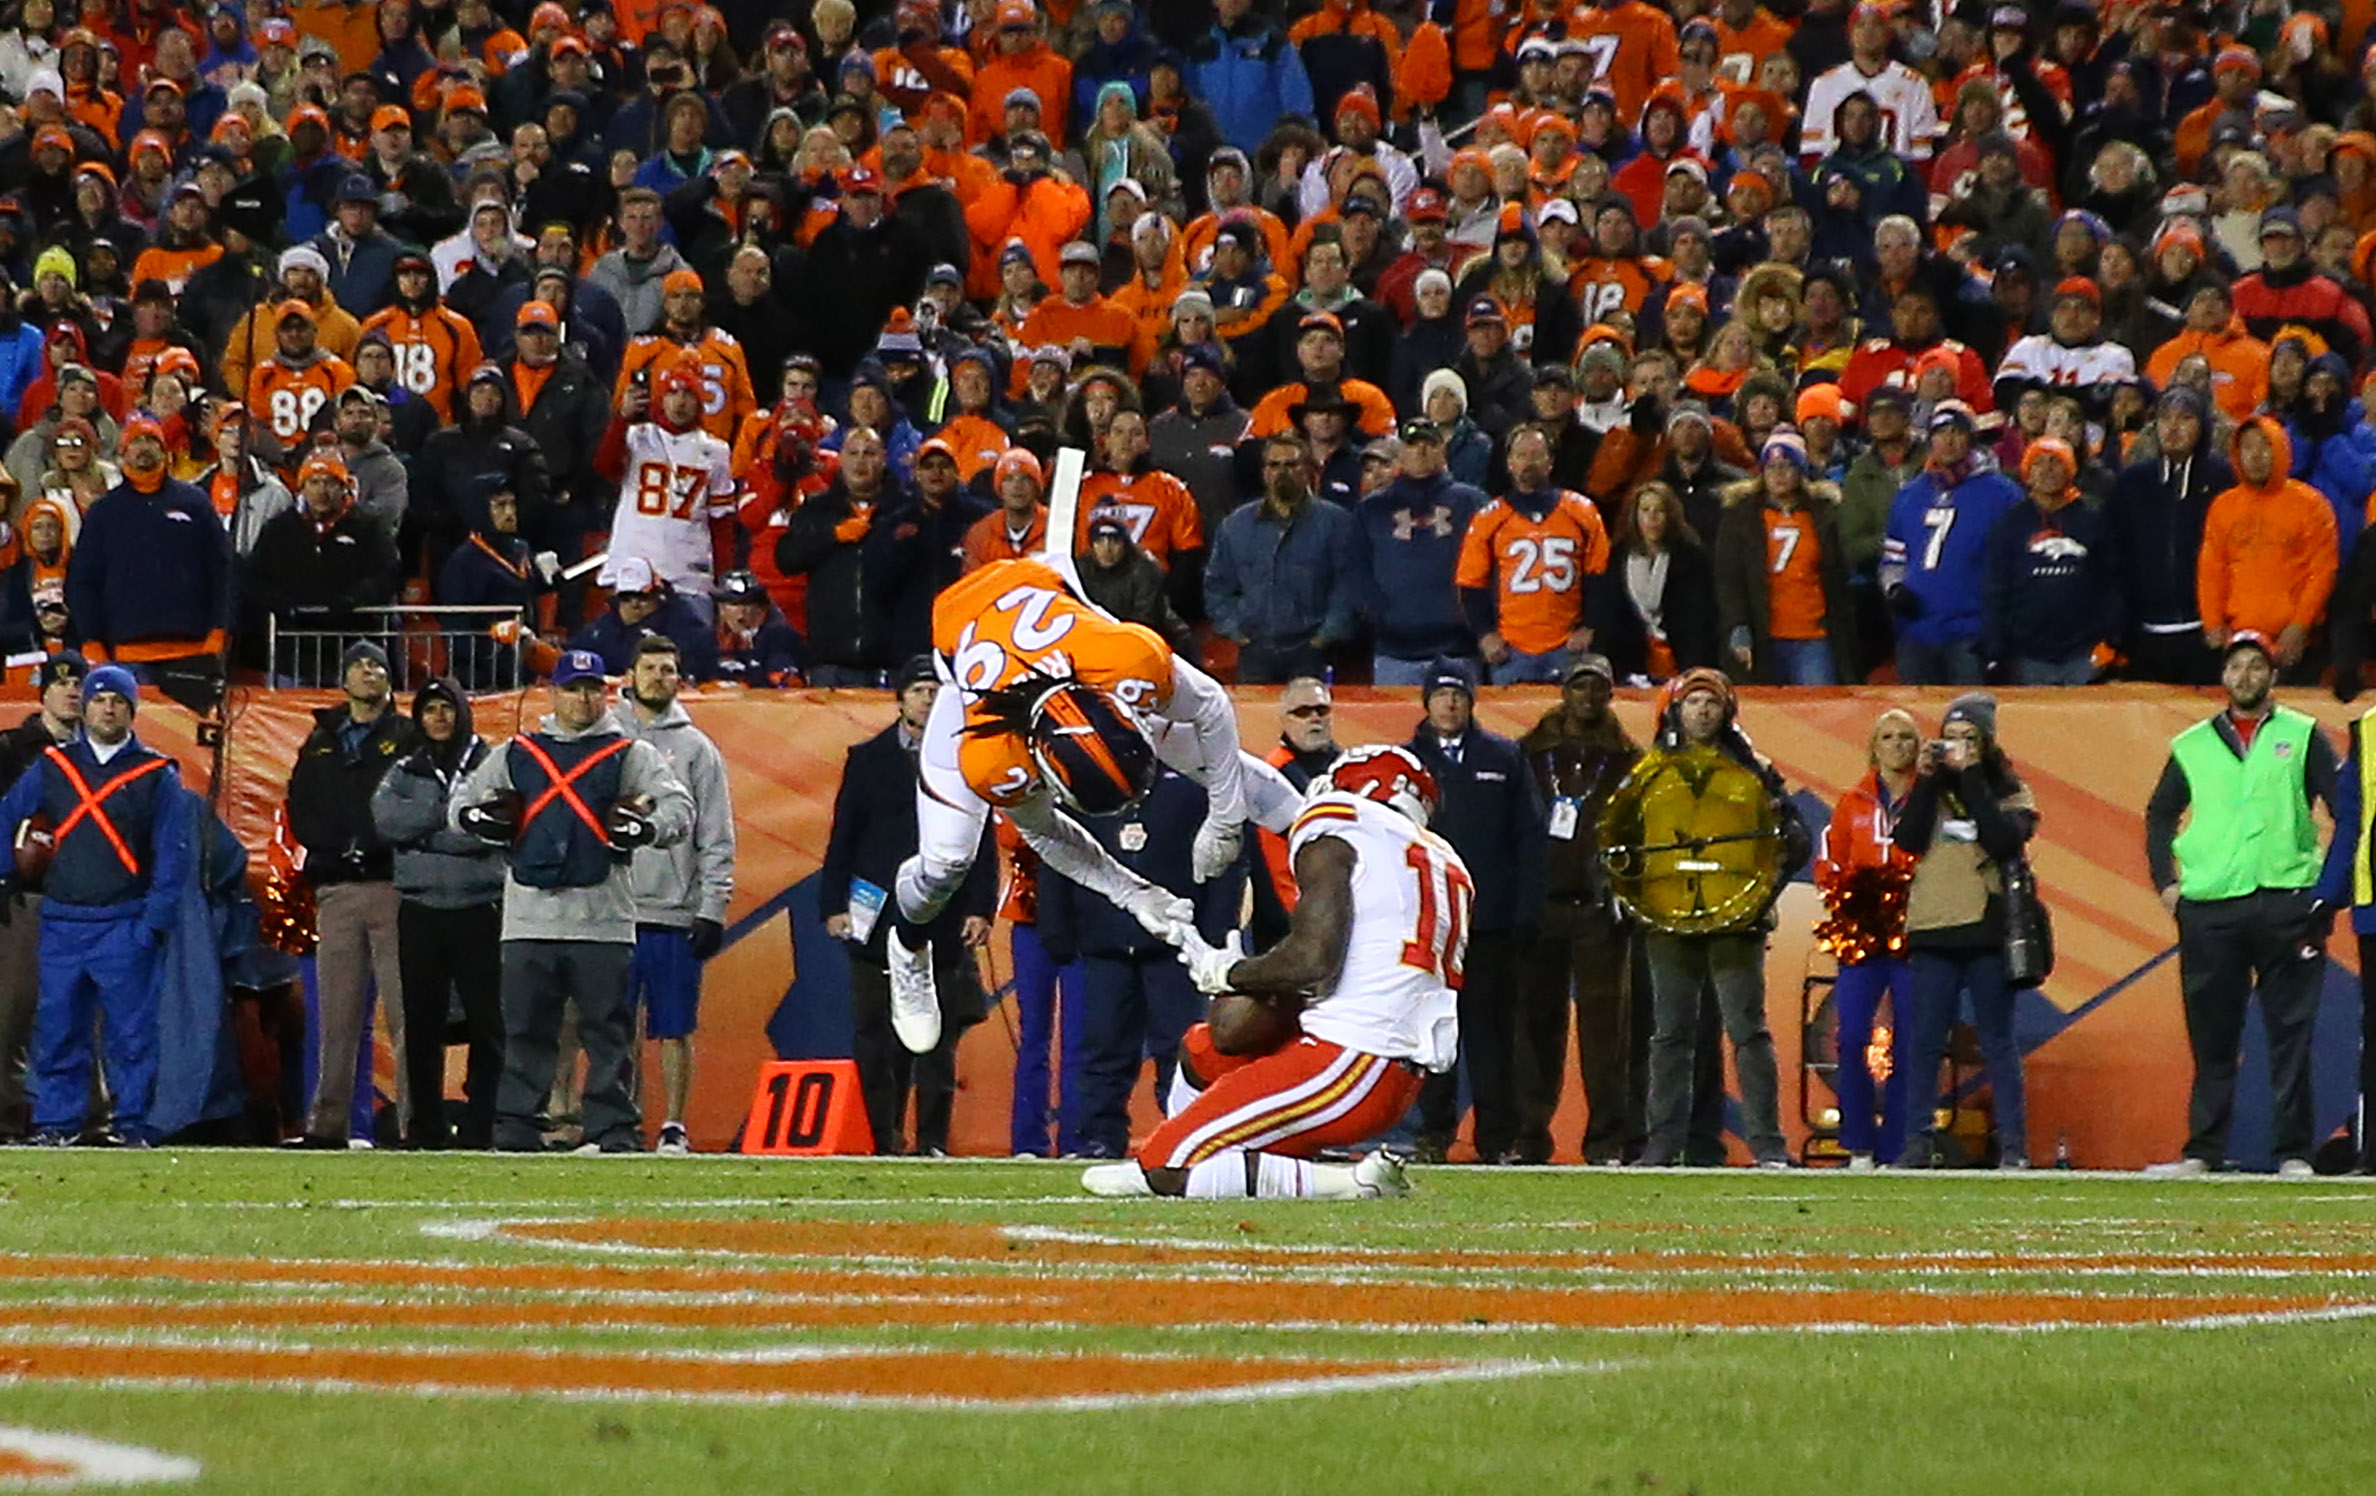 Kansas City's Tyreek Hill hauls in the touchdown pass that set up the game-tying two-point conversion in the final seconds of regulation Sunday night. The Chiefs went on to beat the Denver Broncos in overtime. (Getty Images)